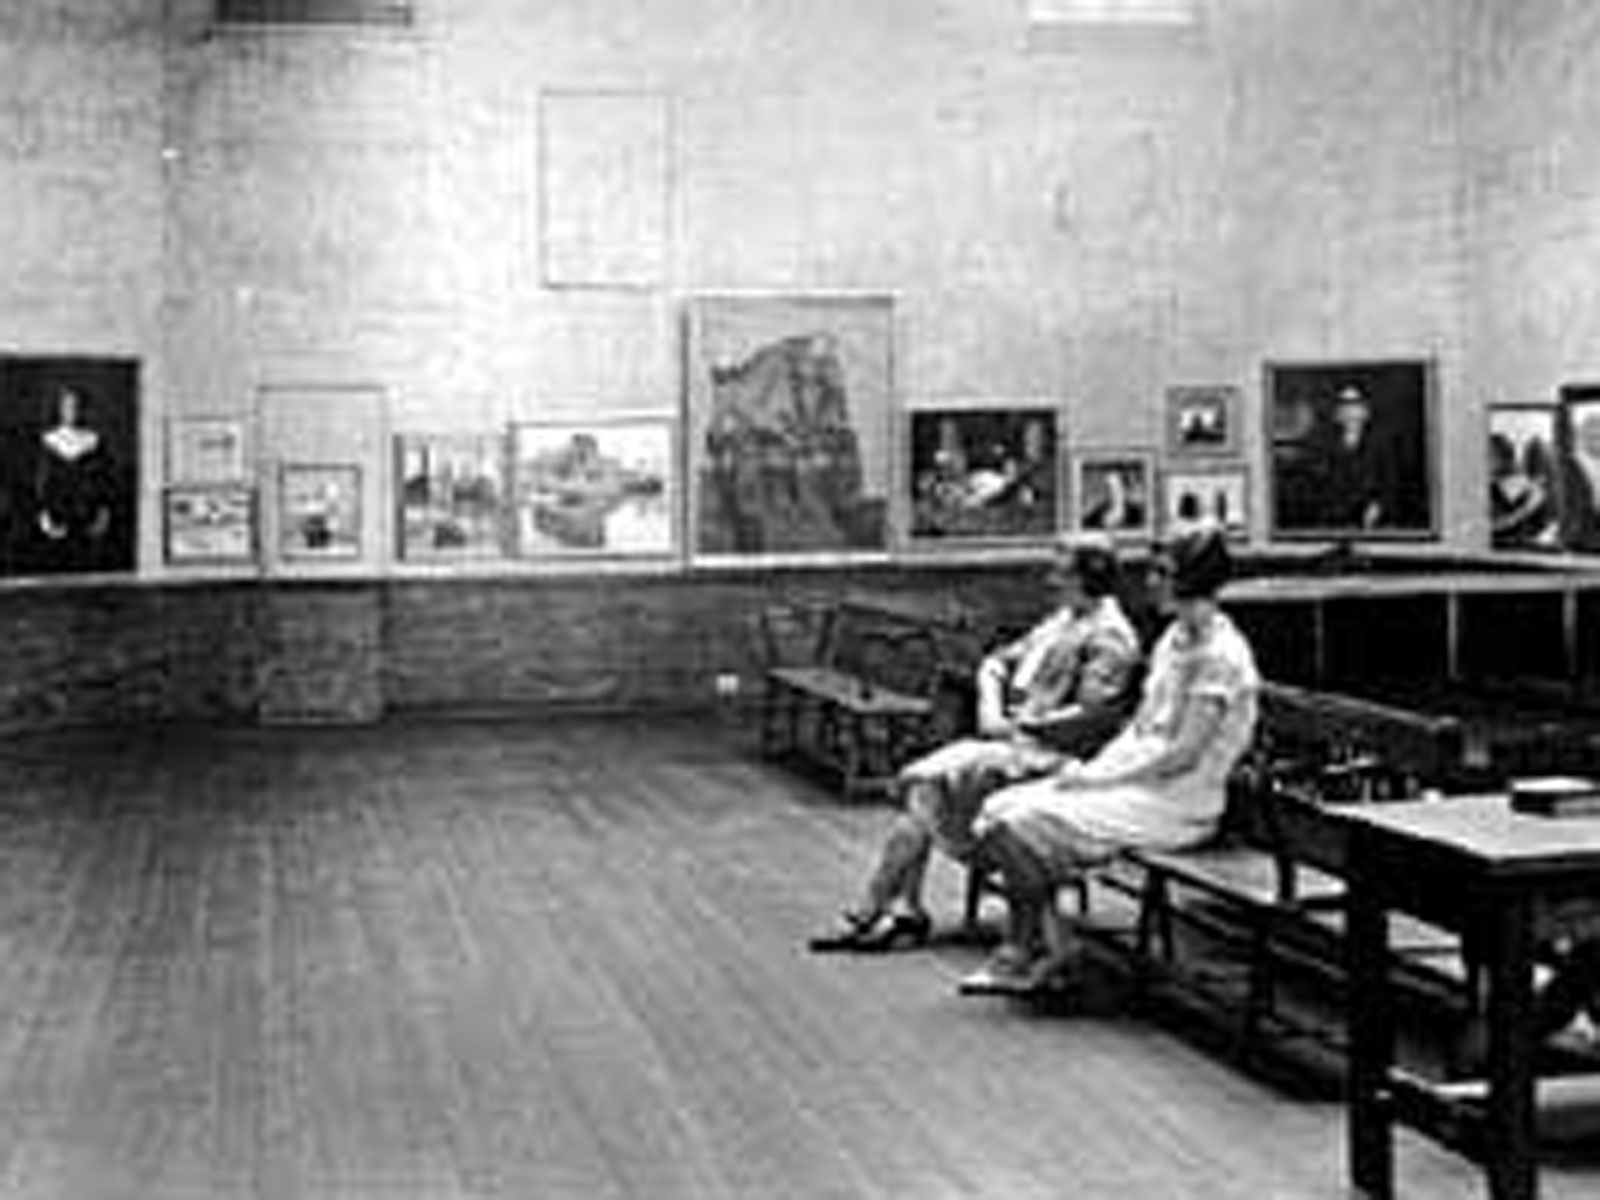 archival image of two women sitting on a bench in the museum looking at an exhibition